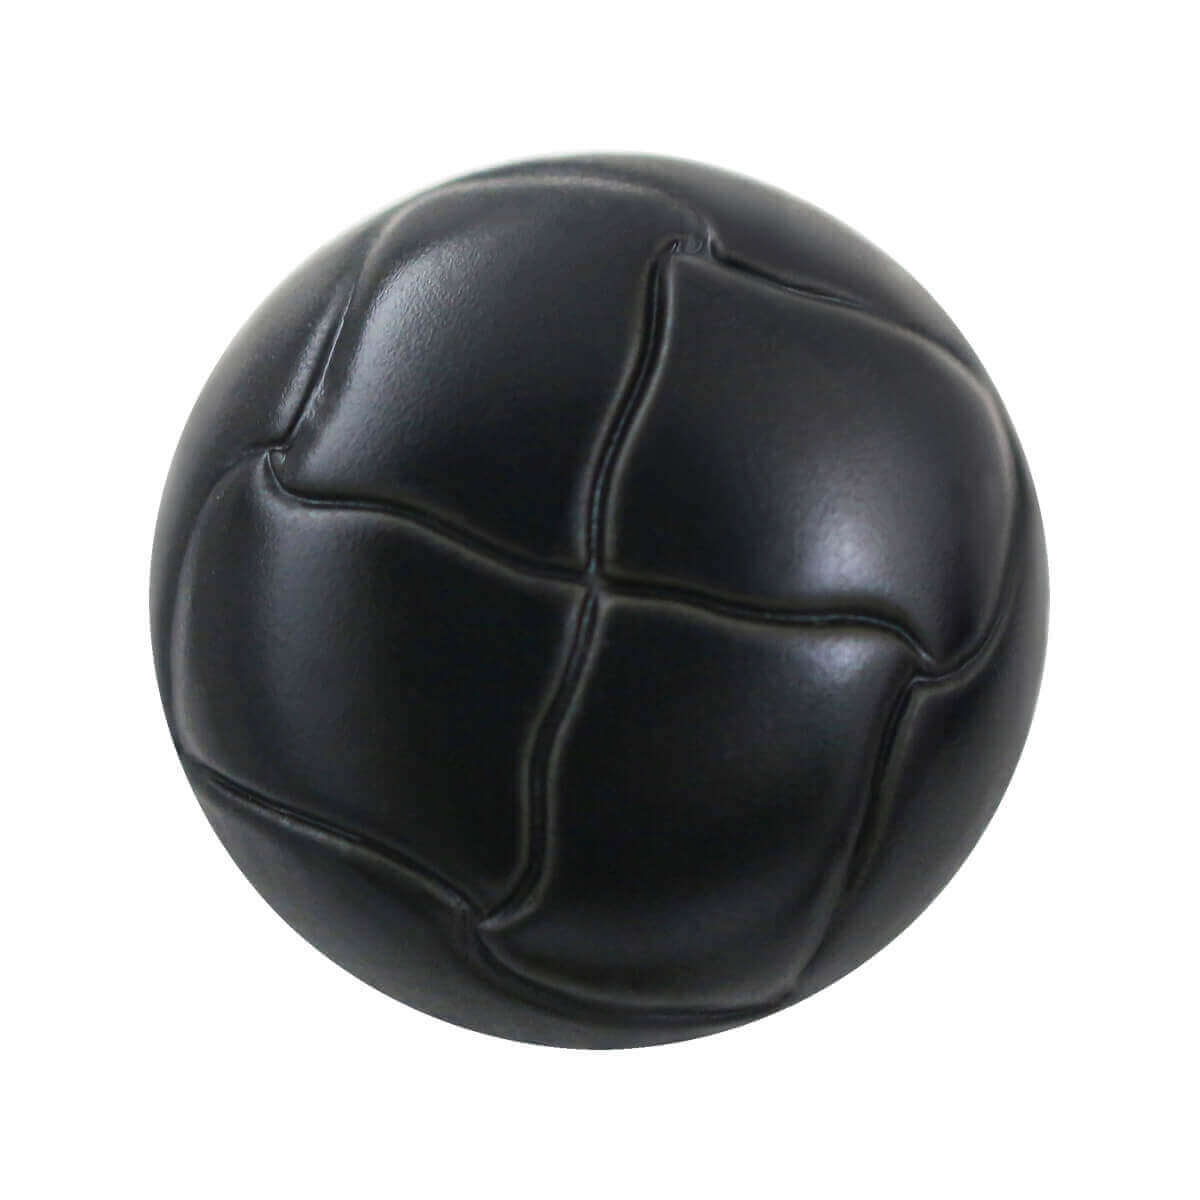 G077-YTA1-nylon-button-imitation-leather-color-black